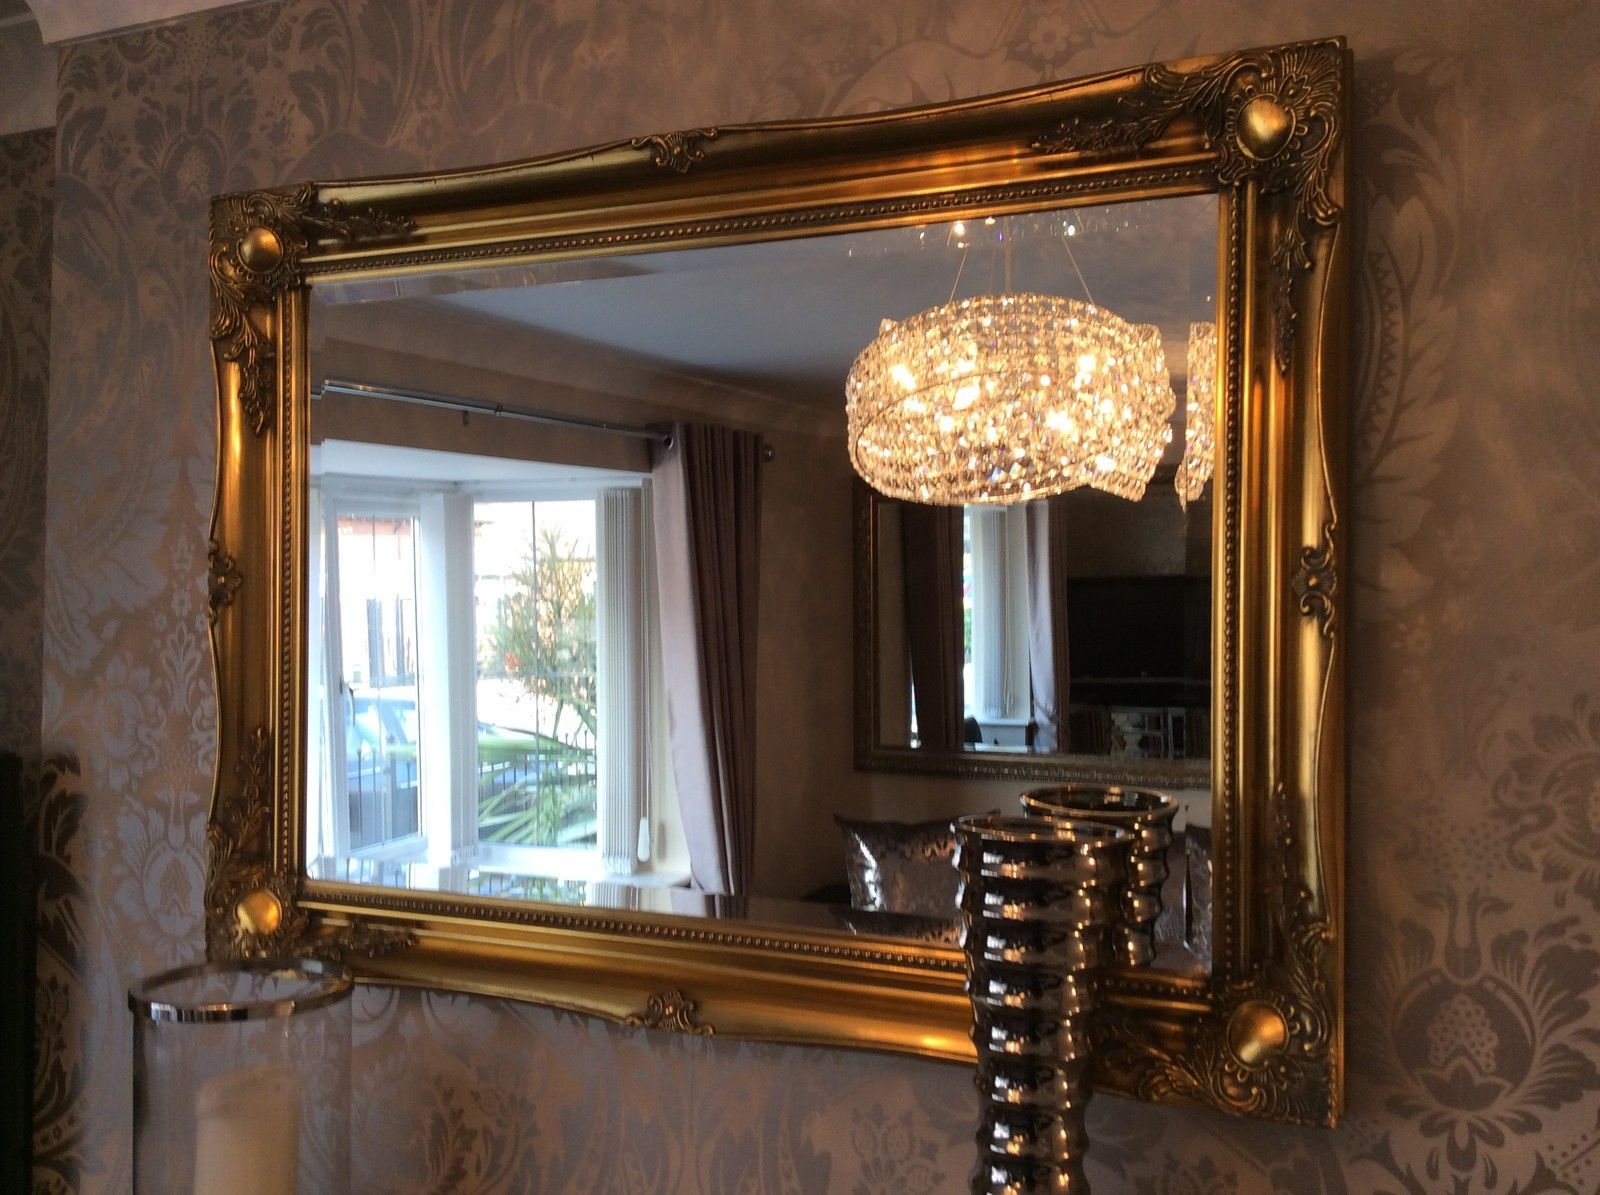 Gold Metal Wall Mirror: Large Antique Gold Shabby Chic Ornate Decorative Over